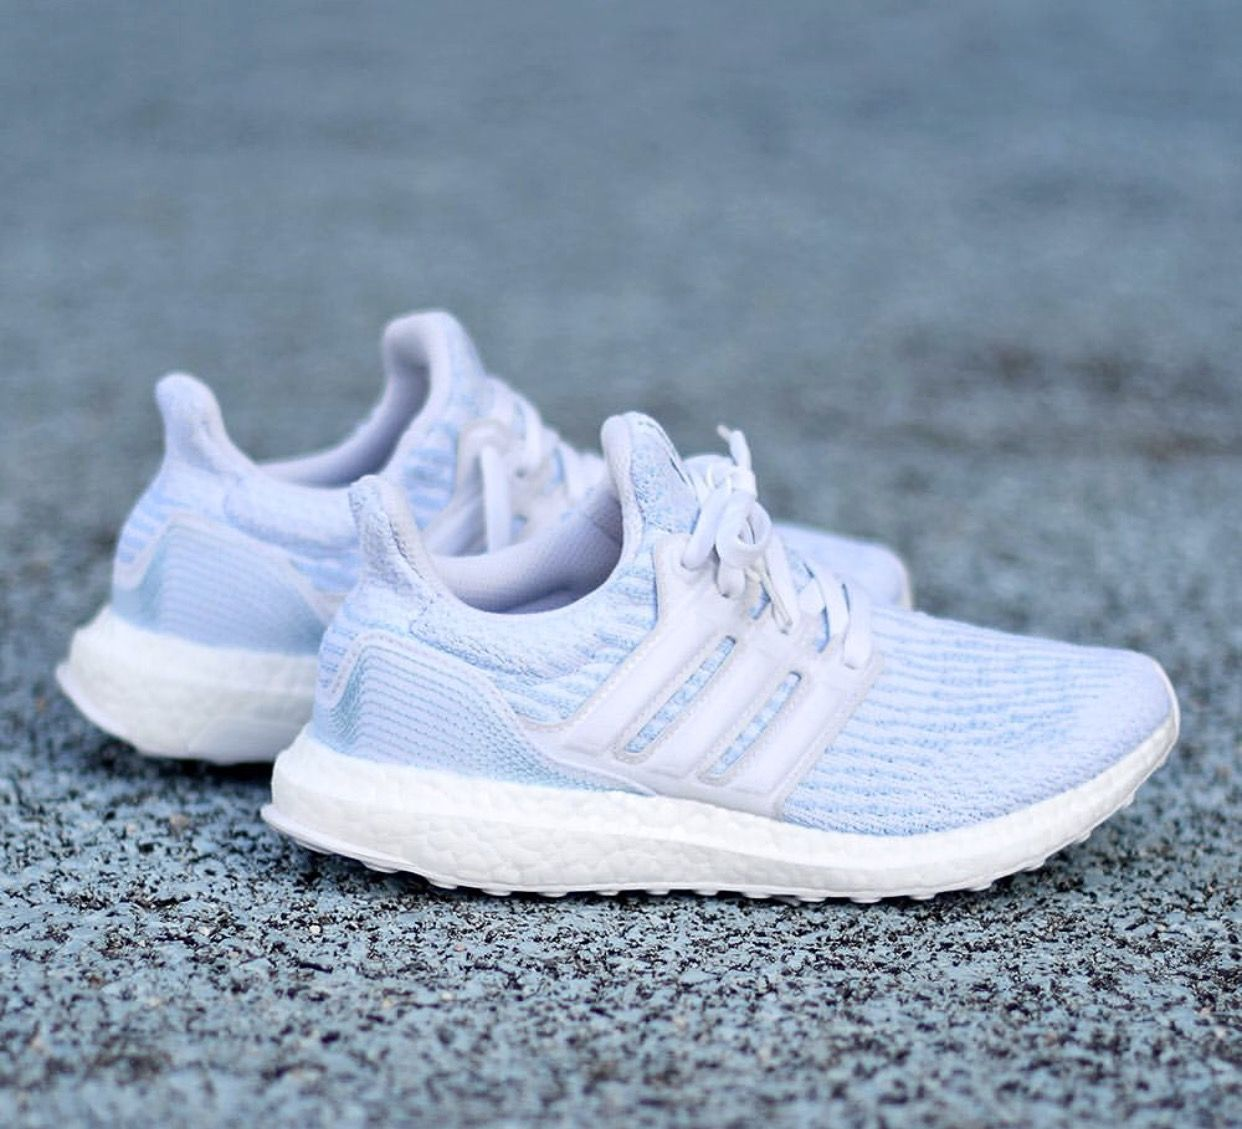 22b5b2d2d Made from 11 plastic bottles  recycled ocean waste. Adidas x Parley Ultra  Boost 3.0. Release date not yet confirmed.